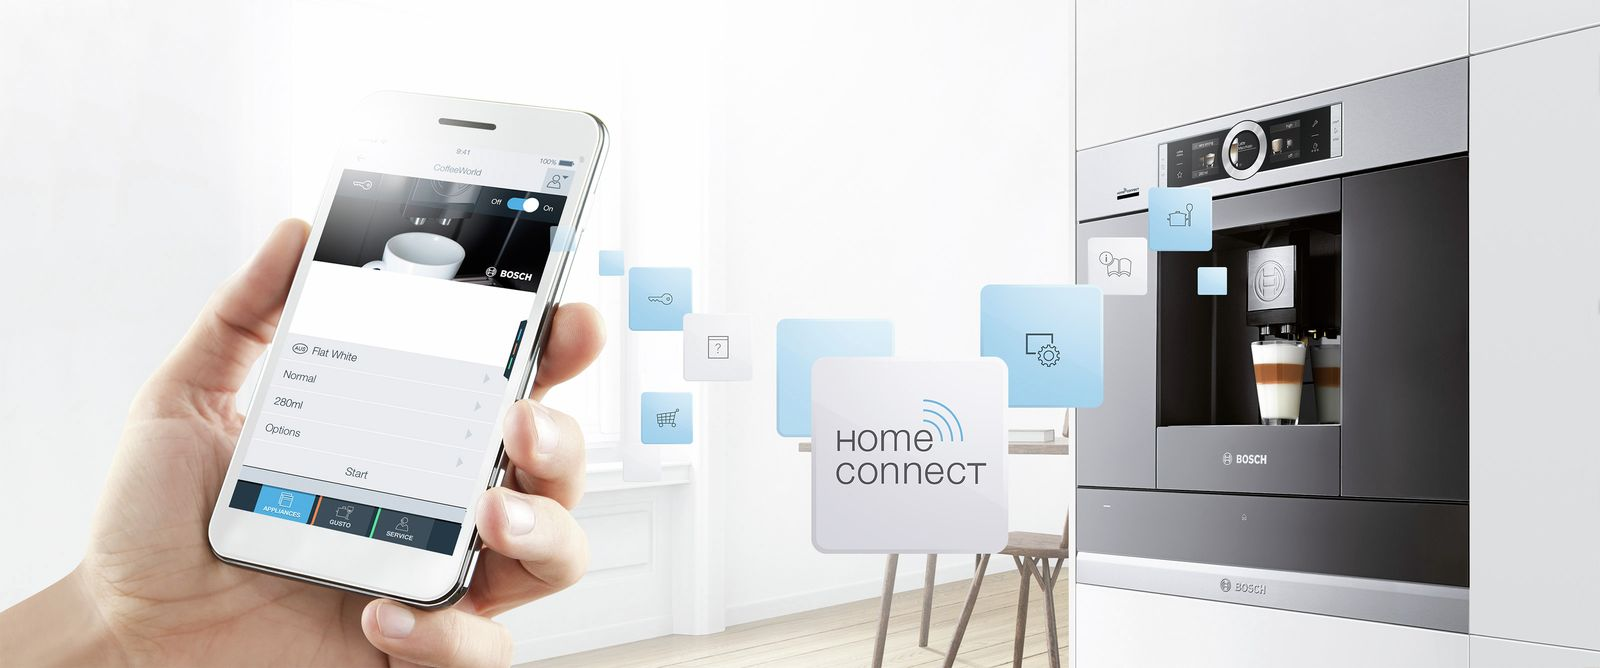 Home connect koffie